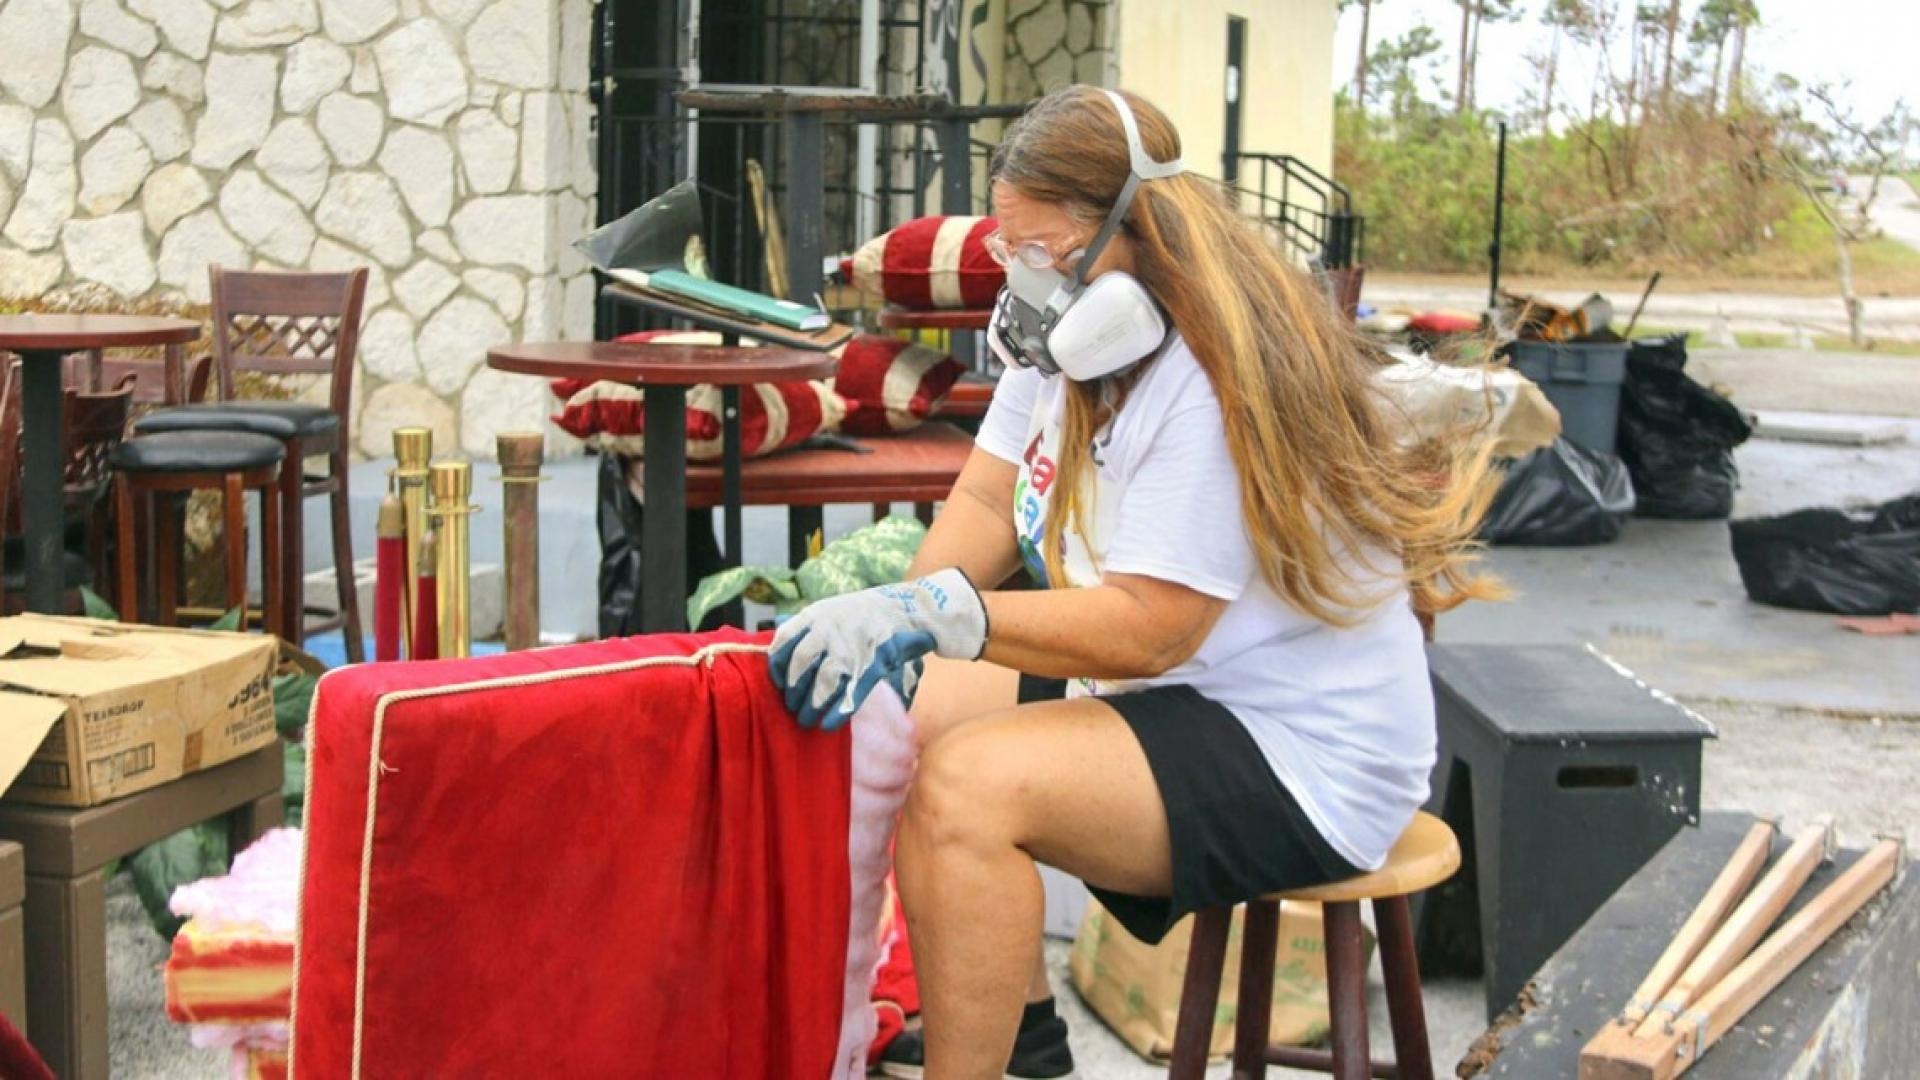 A woman wearing a mask cleaning a couch cushion outside.